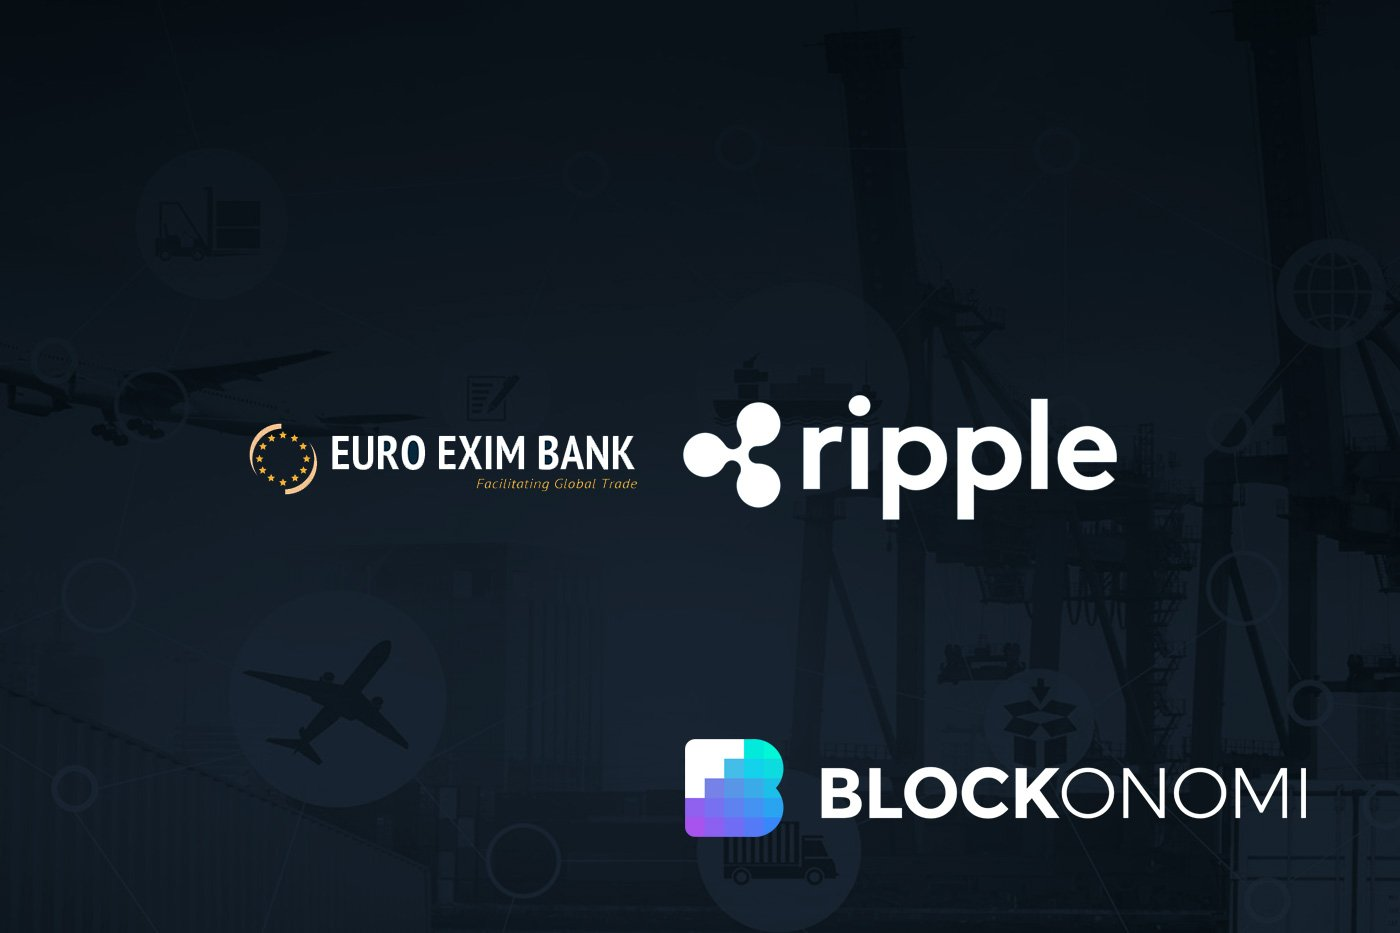 Euro Exim Bank Sees Ripple as Game Changer for Cross-Border Payments